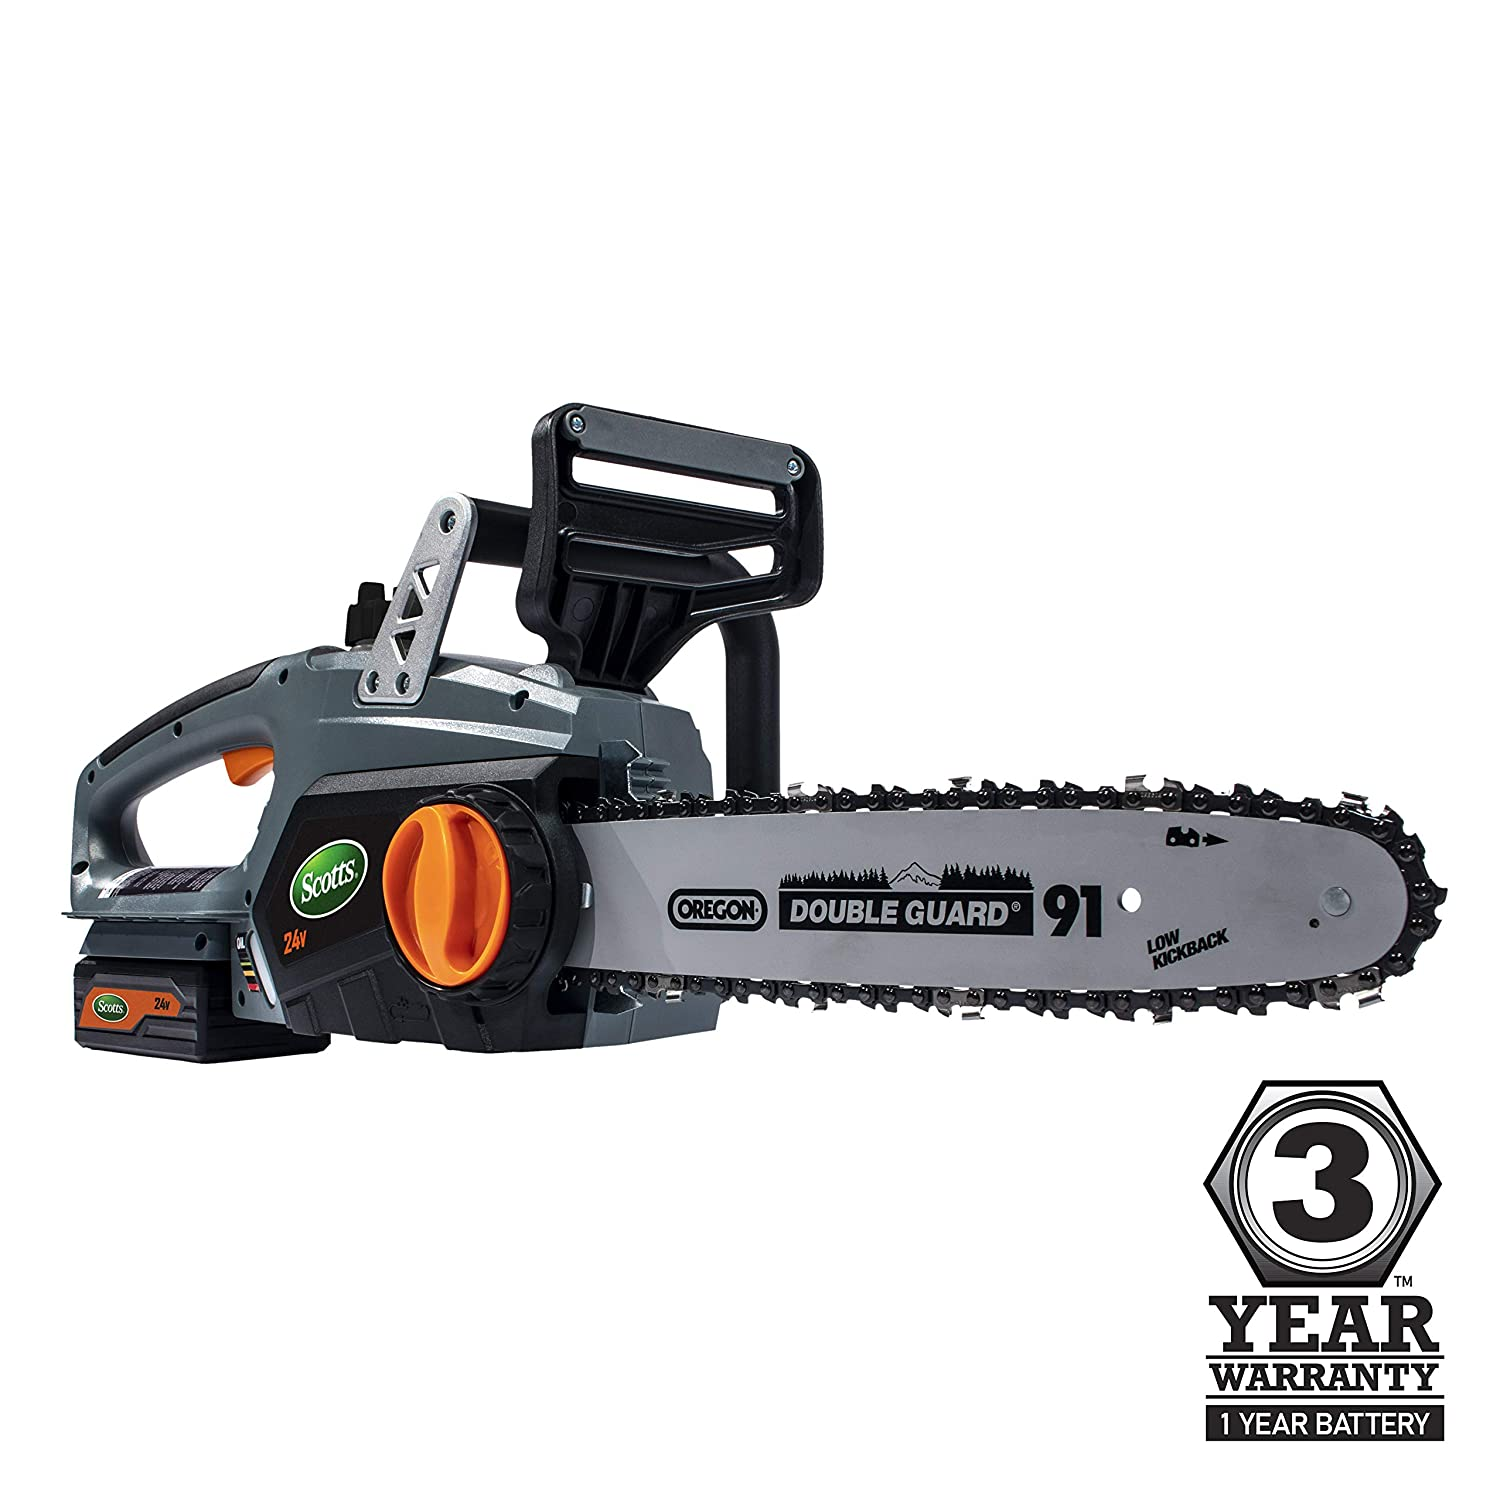 Scotts Outdoor Power Tools LCS31224S featured image 2